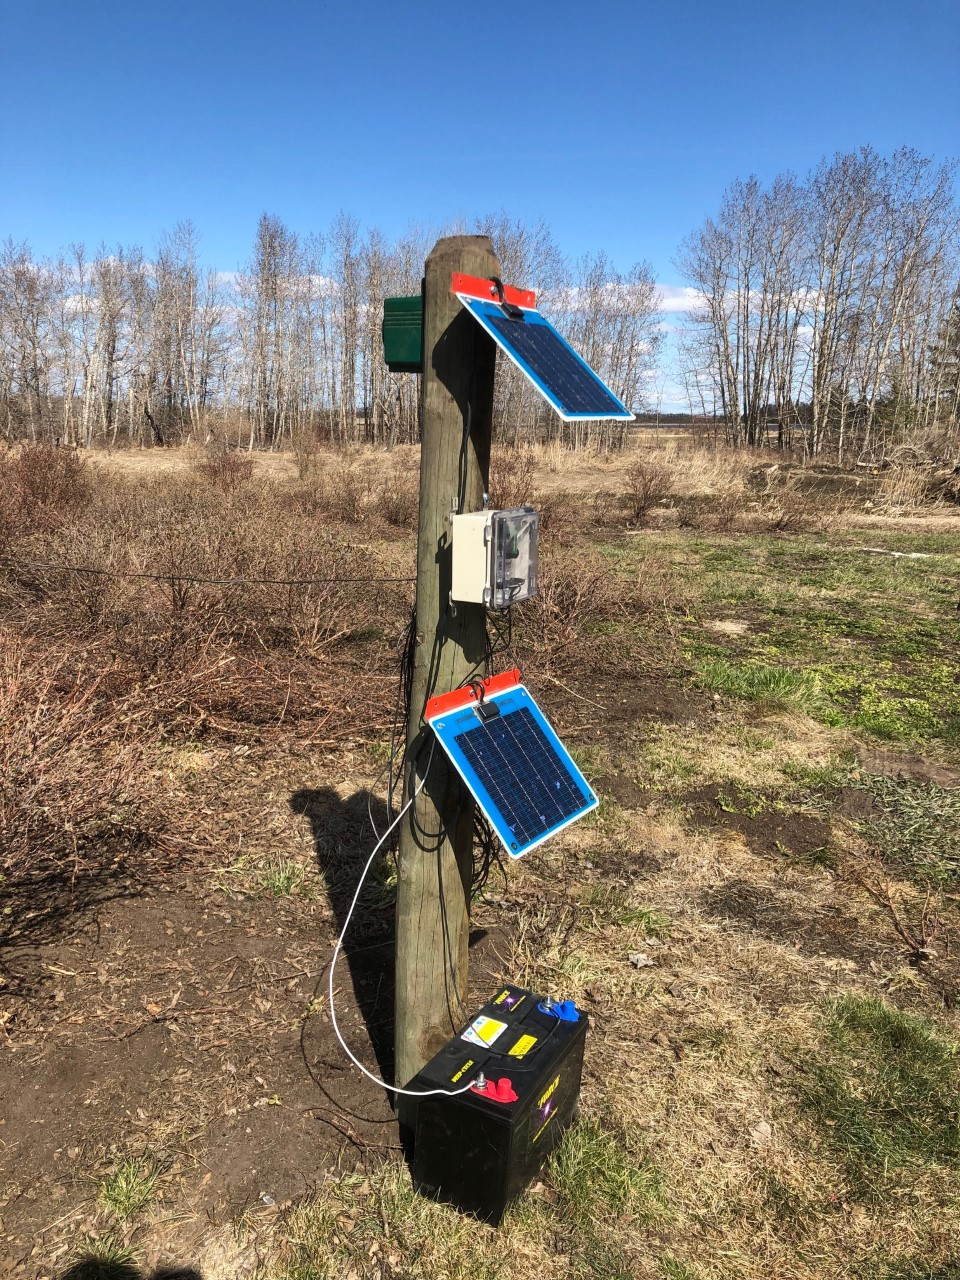 - Bird Gard works by broadcasting digital recordings of actual bird distress calls, at a frequency birds hear and recognize, throughout the protected area. When birds hear Bird Gard's distress calls, they perceive danger and avoid the area as a result.https://www.birdgard.com